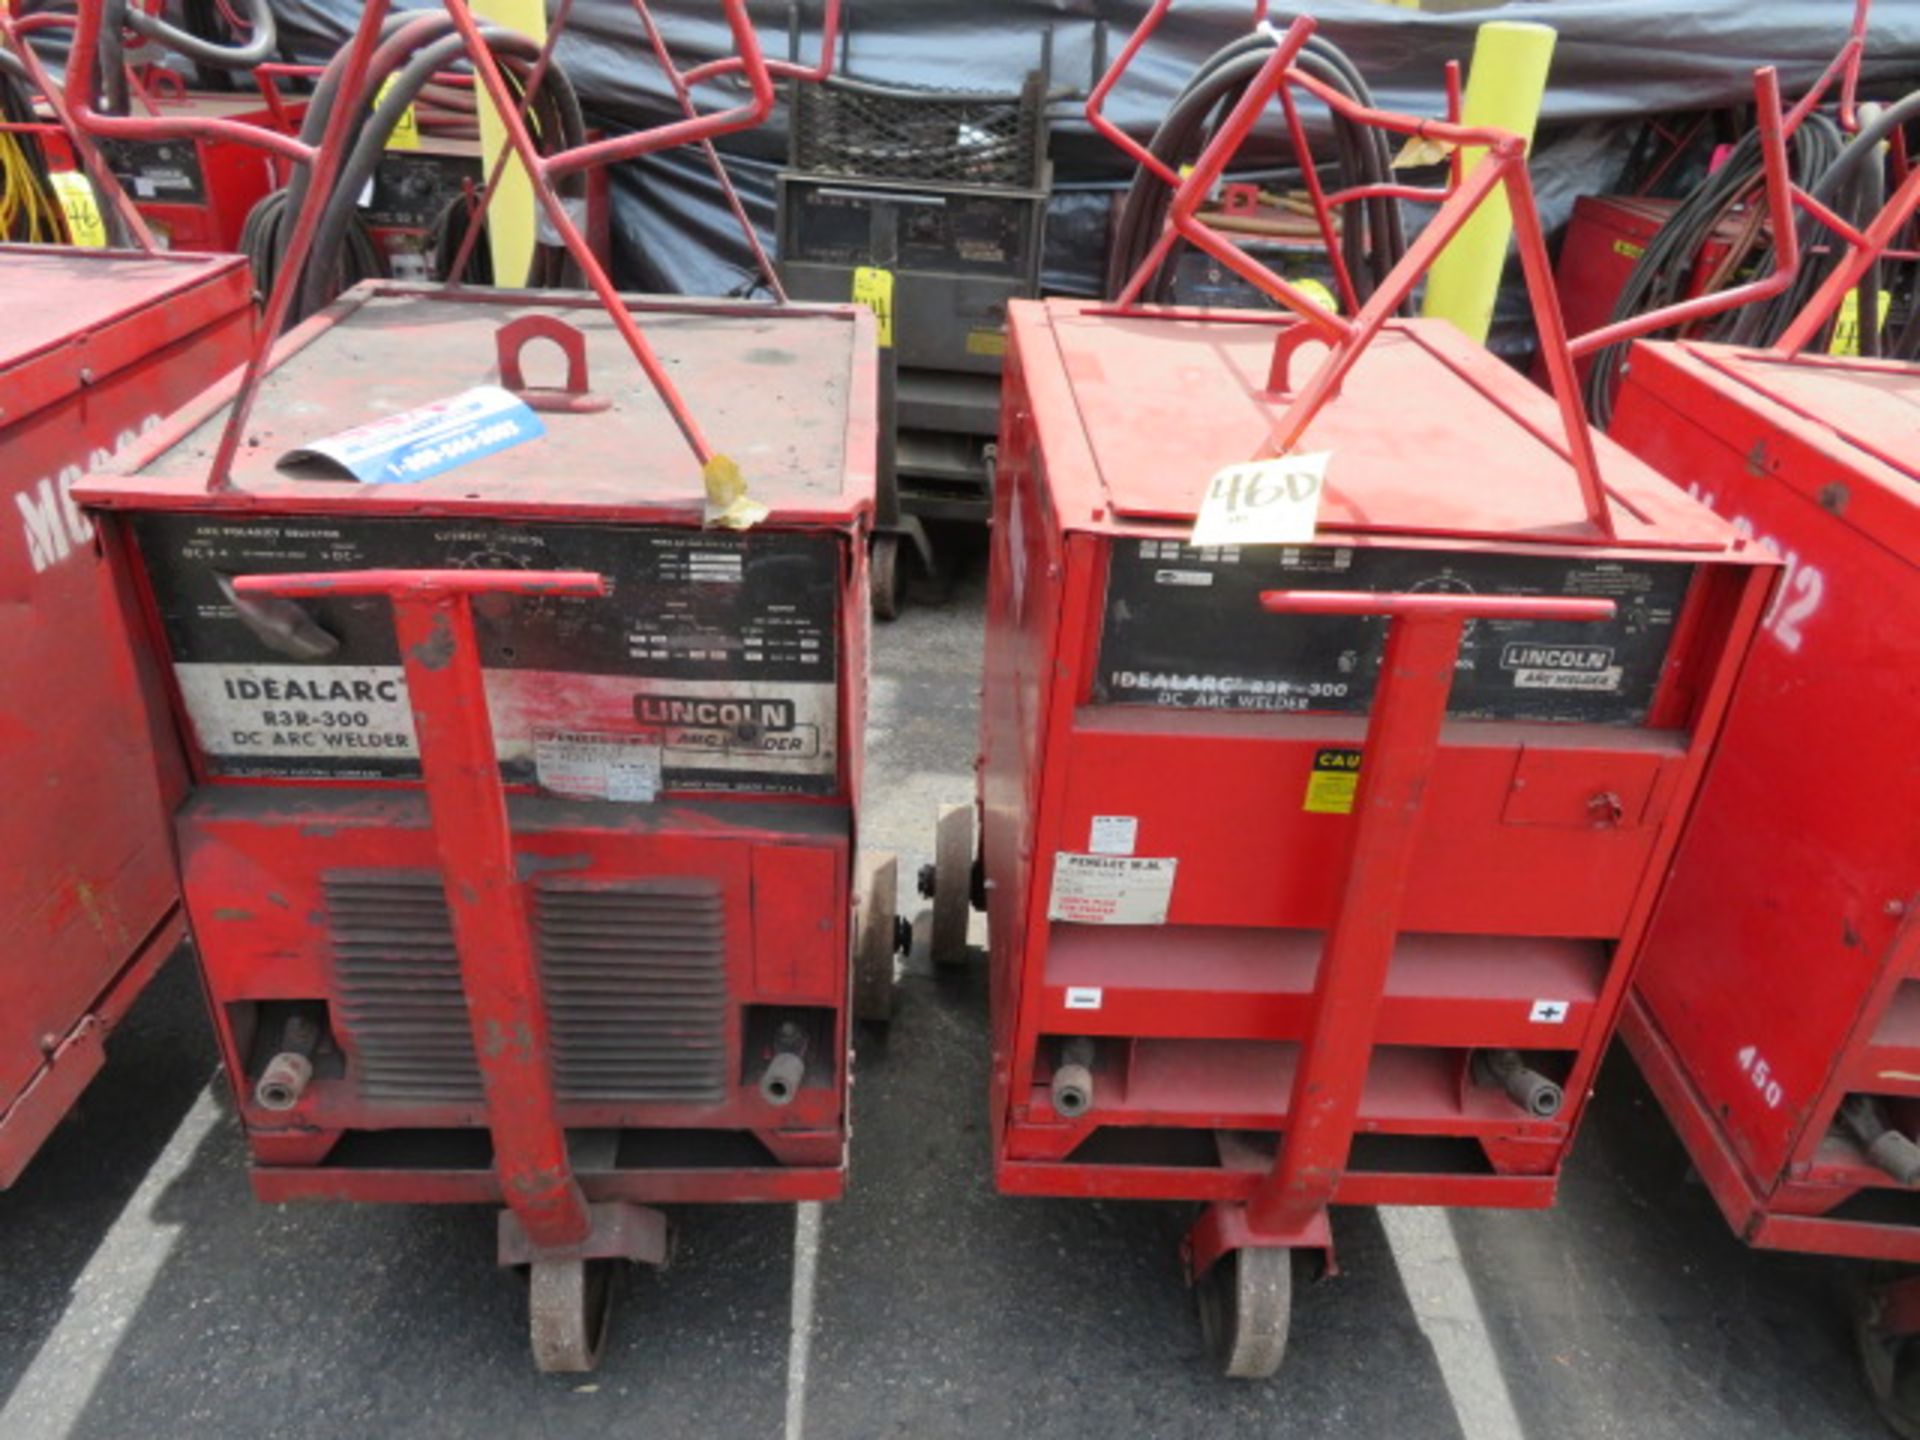 Lot 46D - LINCOLN IDEALARC R3R 300 TIG WELDER W/ CART